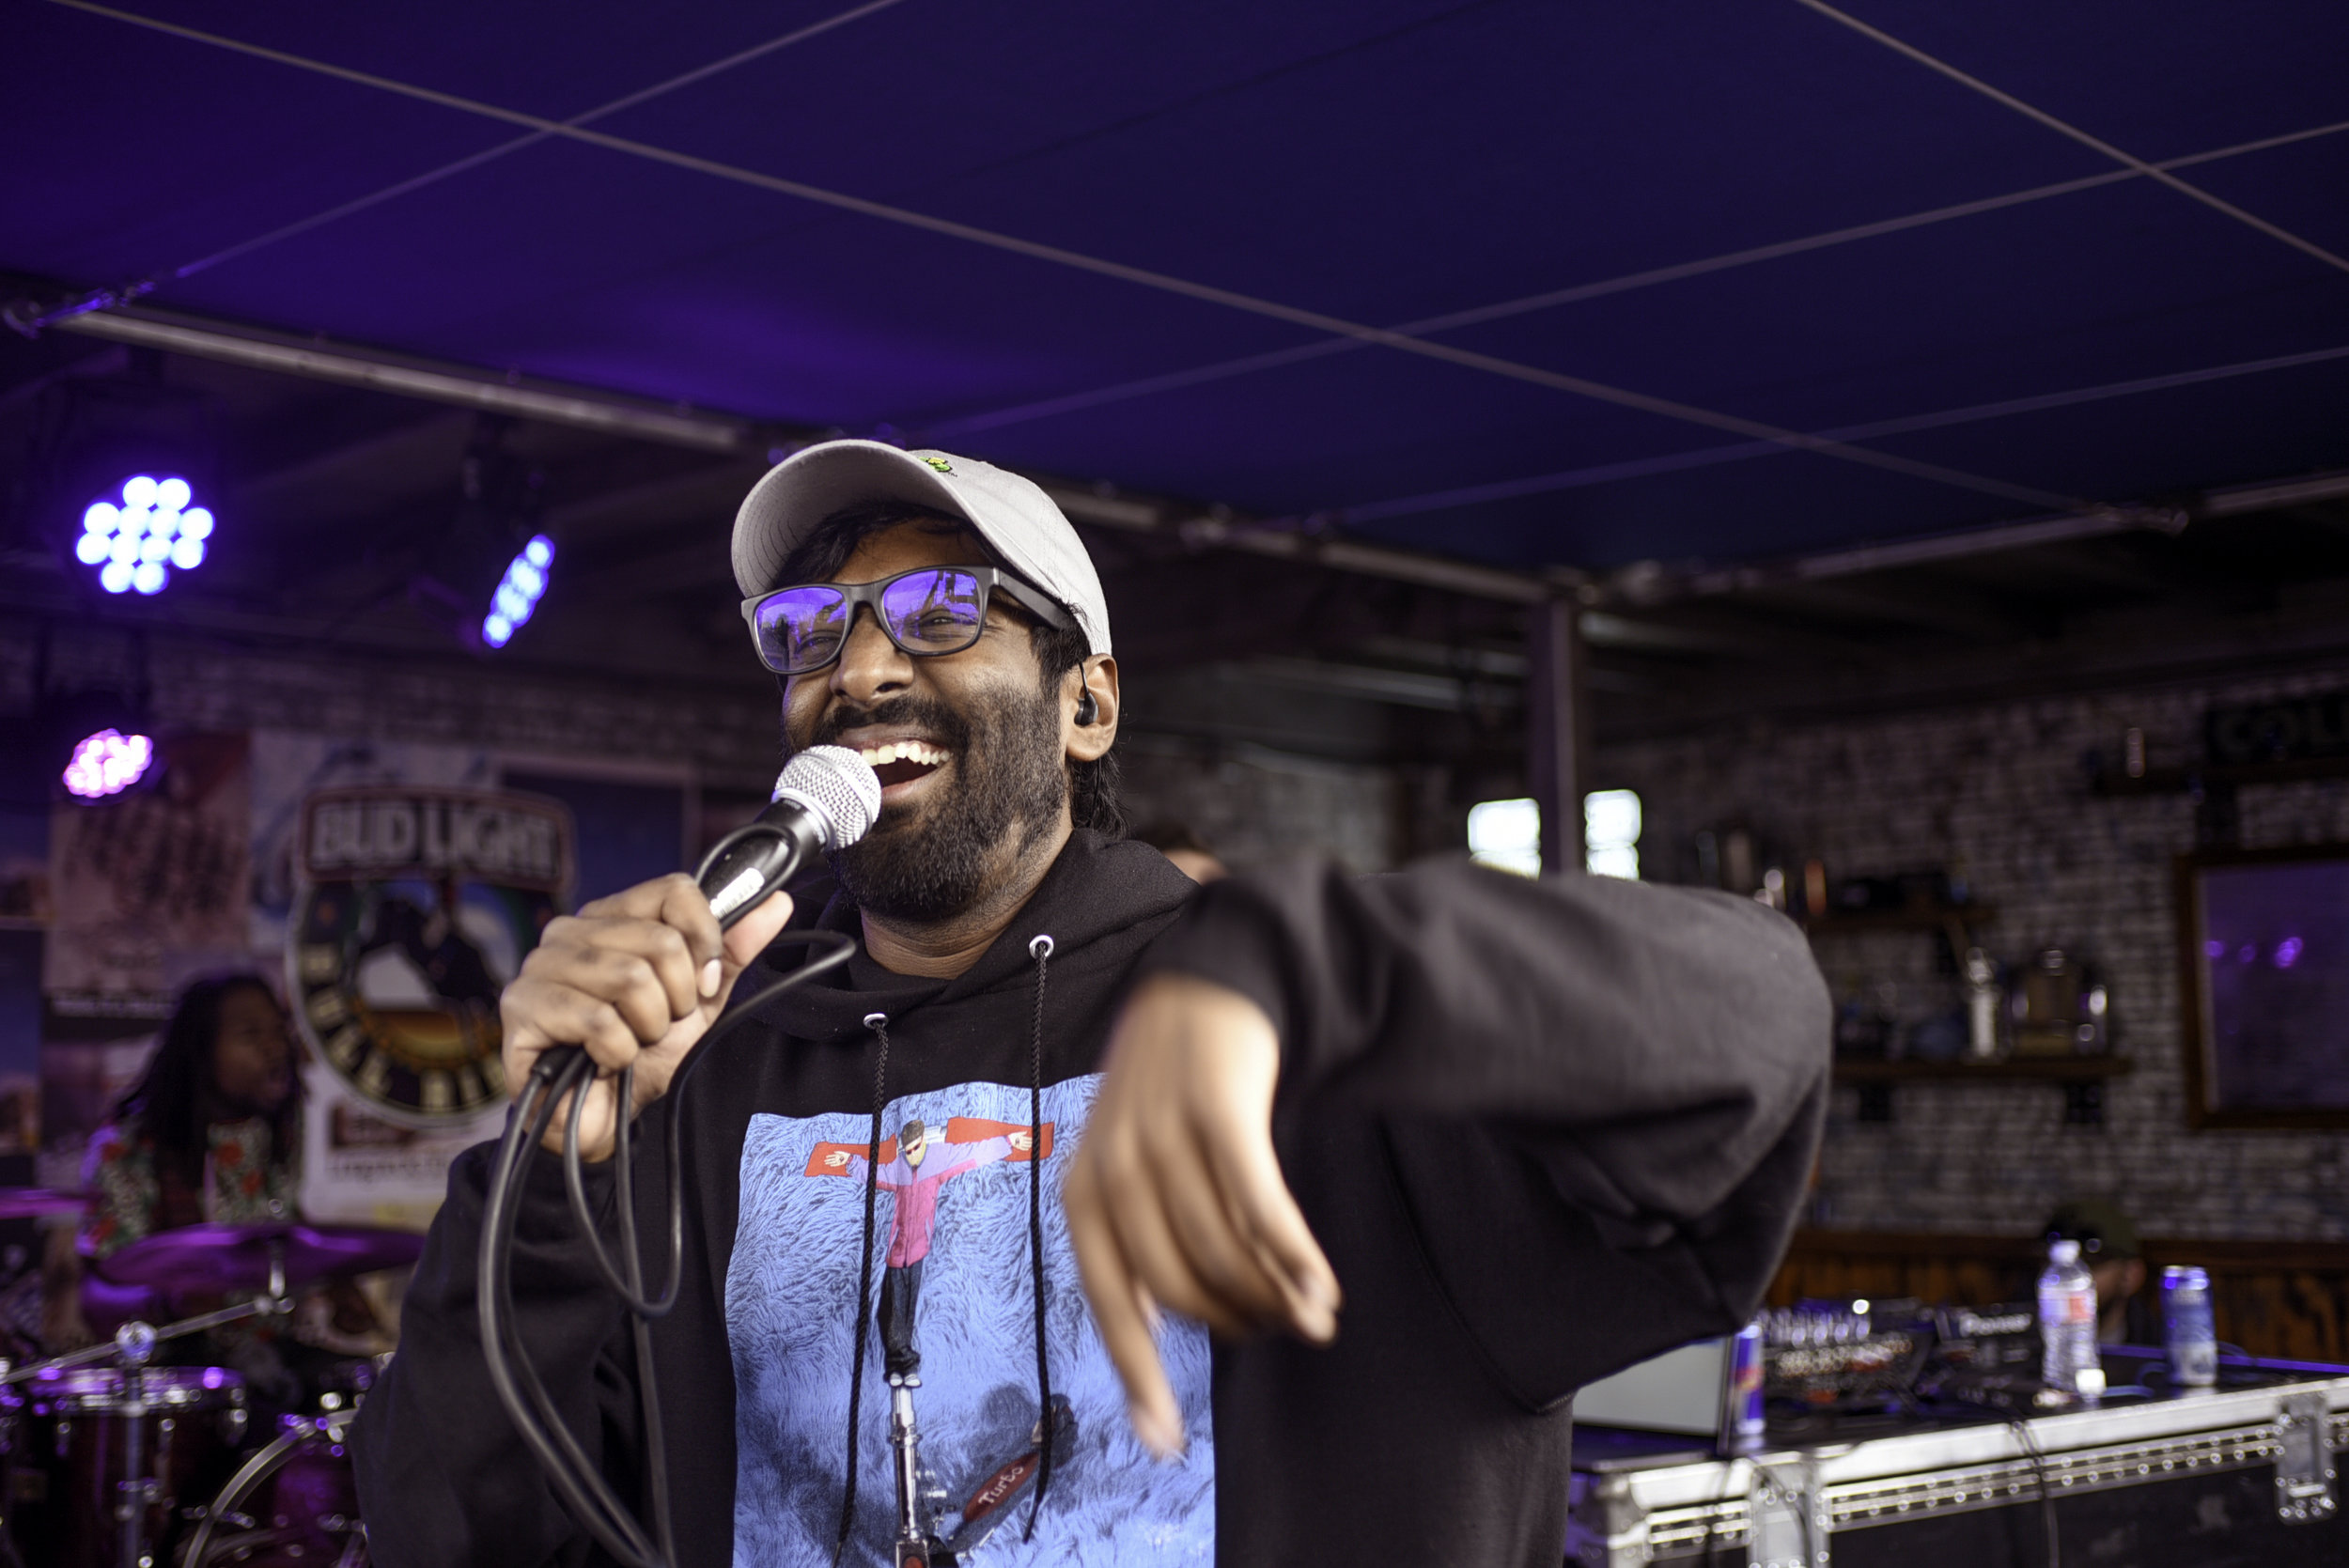 """Austin-based rapper Abhi the Nomad played the Bud Light stage on March 15. His most recent album, """"Marbled,"""" came out in 2018."""